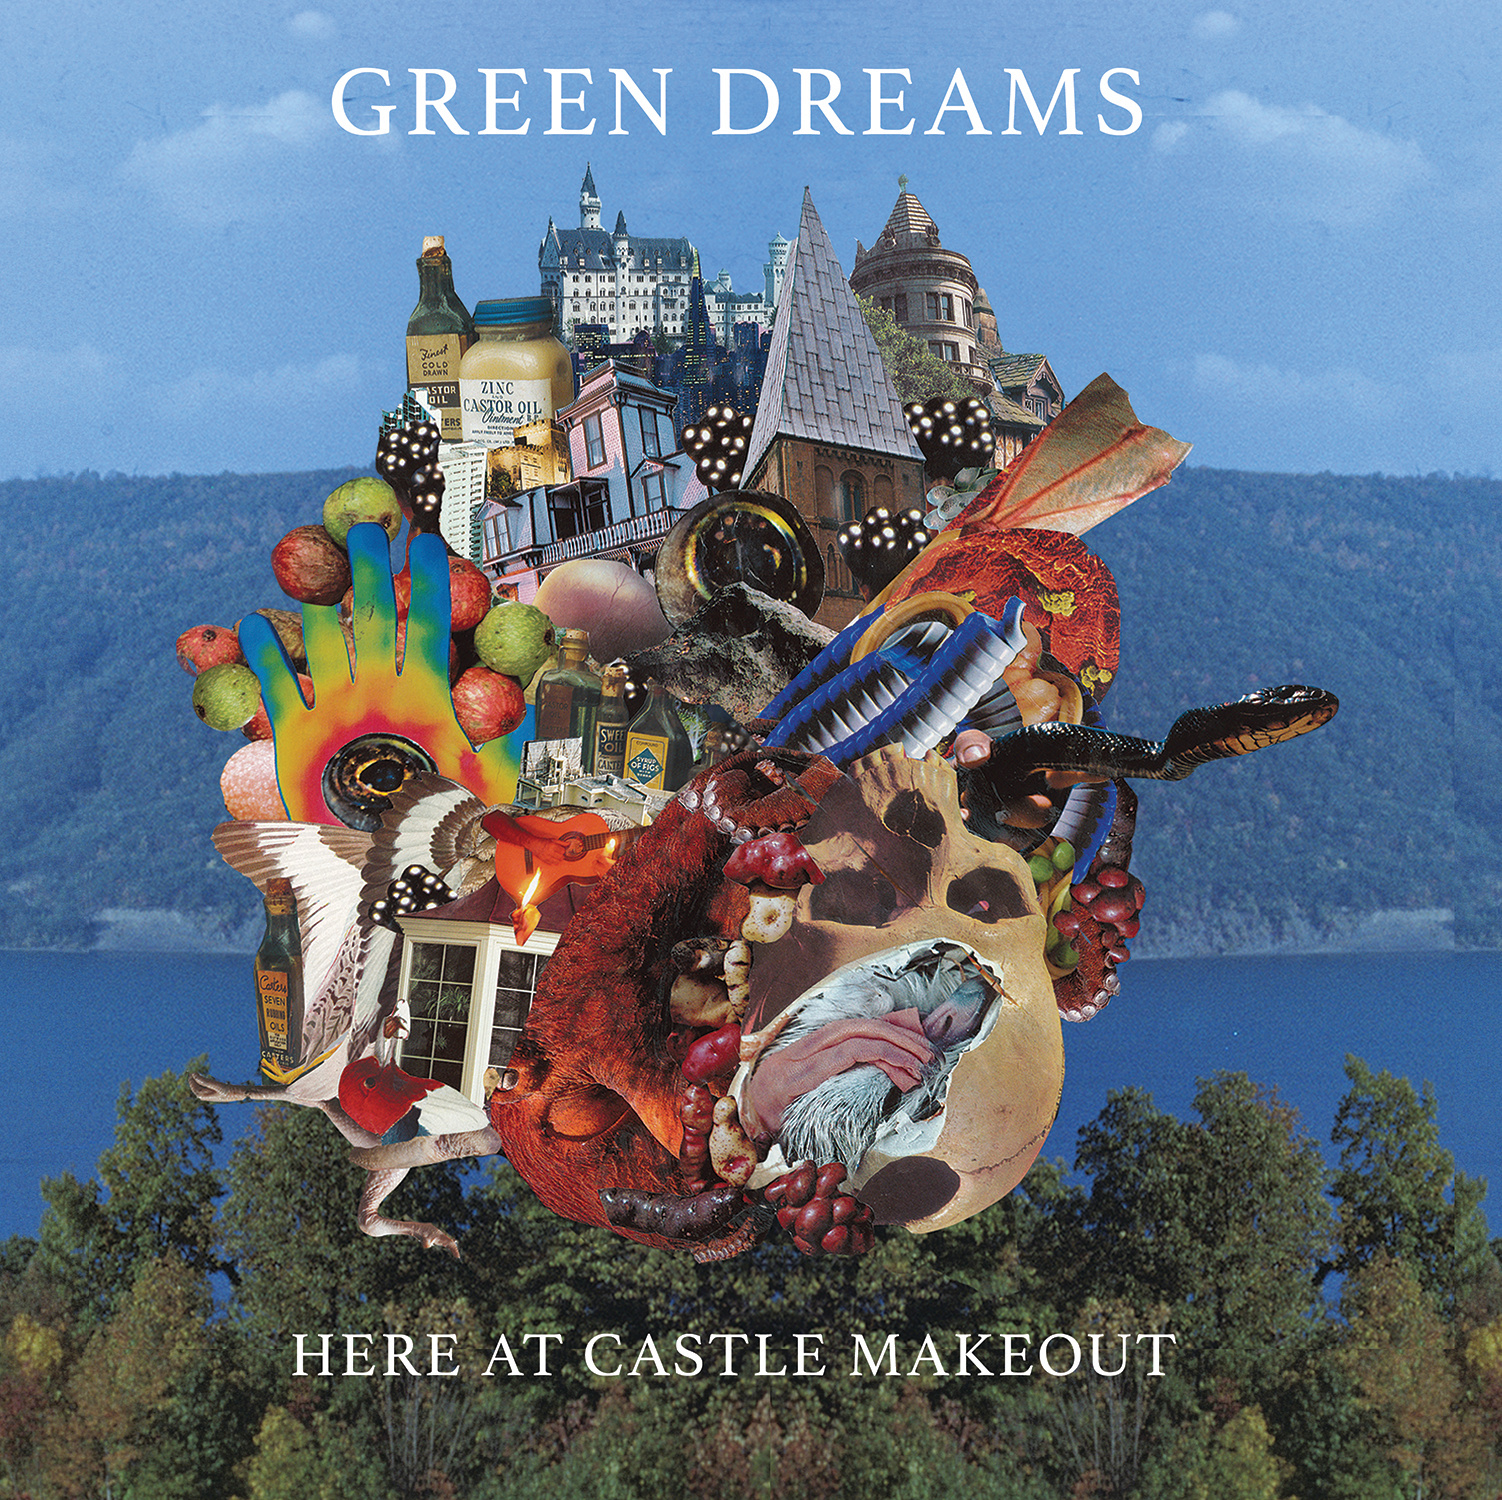 Green Dreams album art, 2016